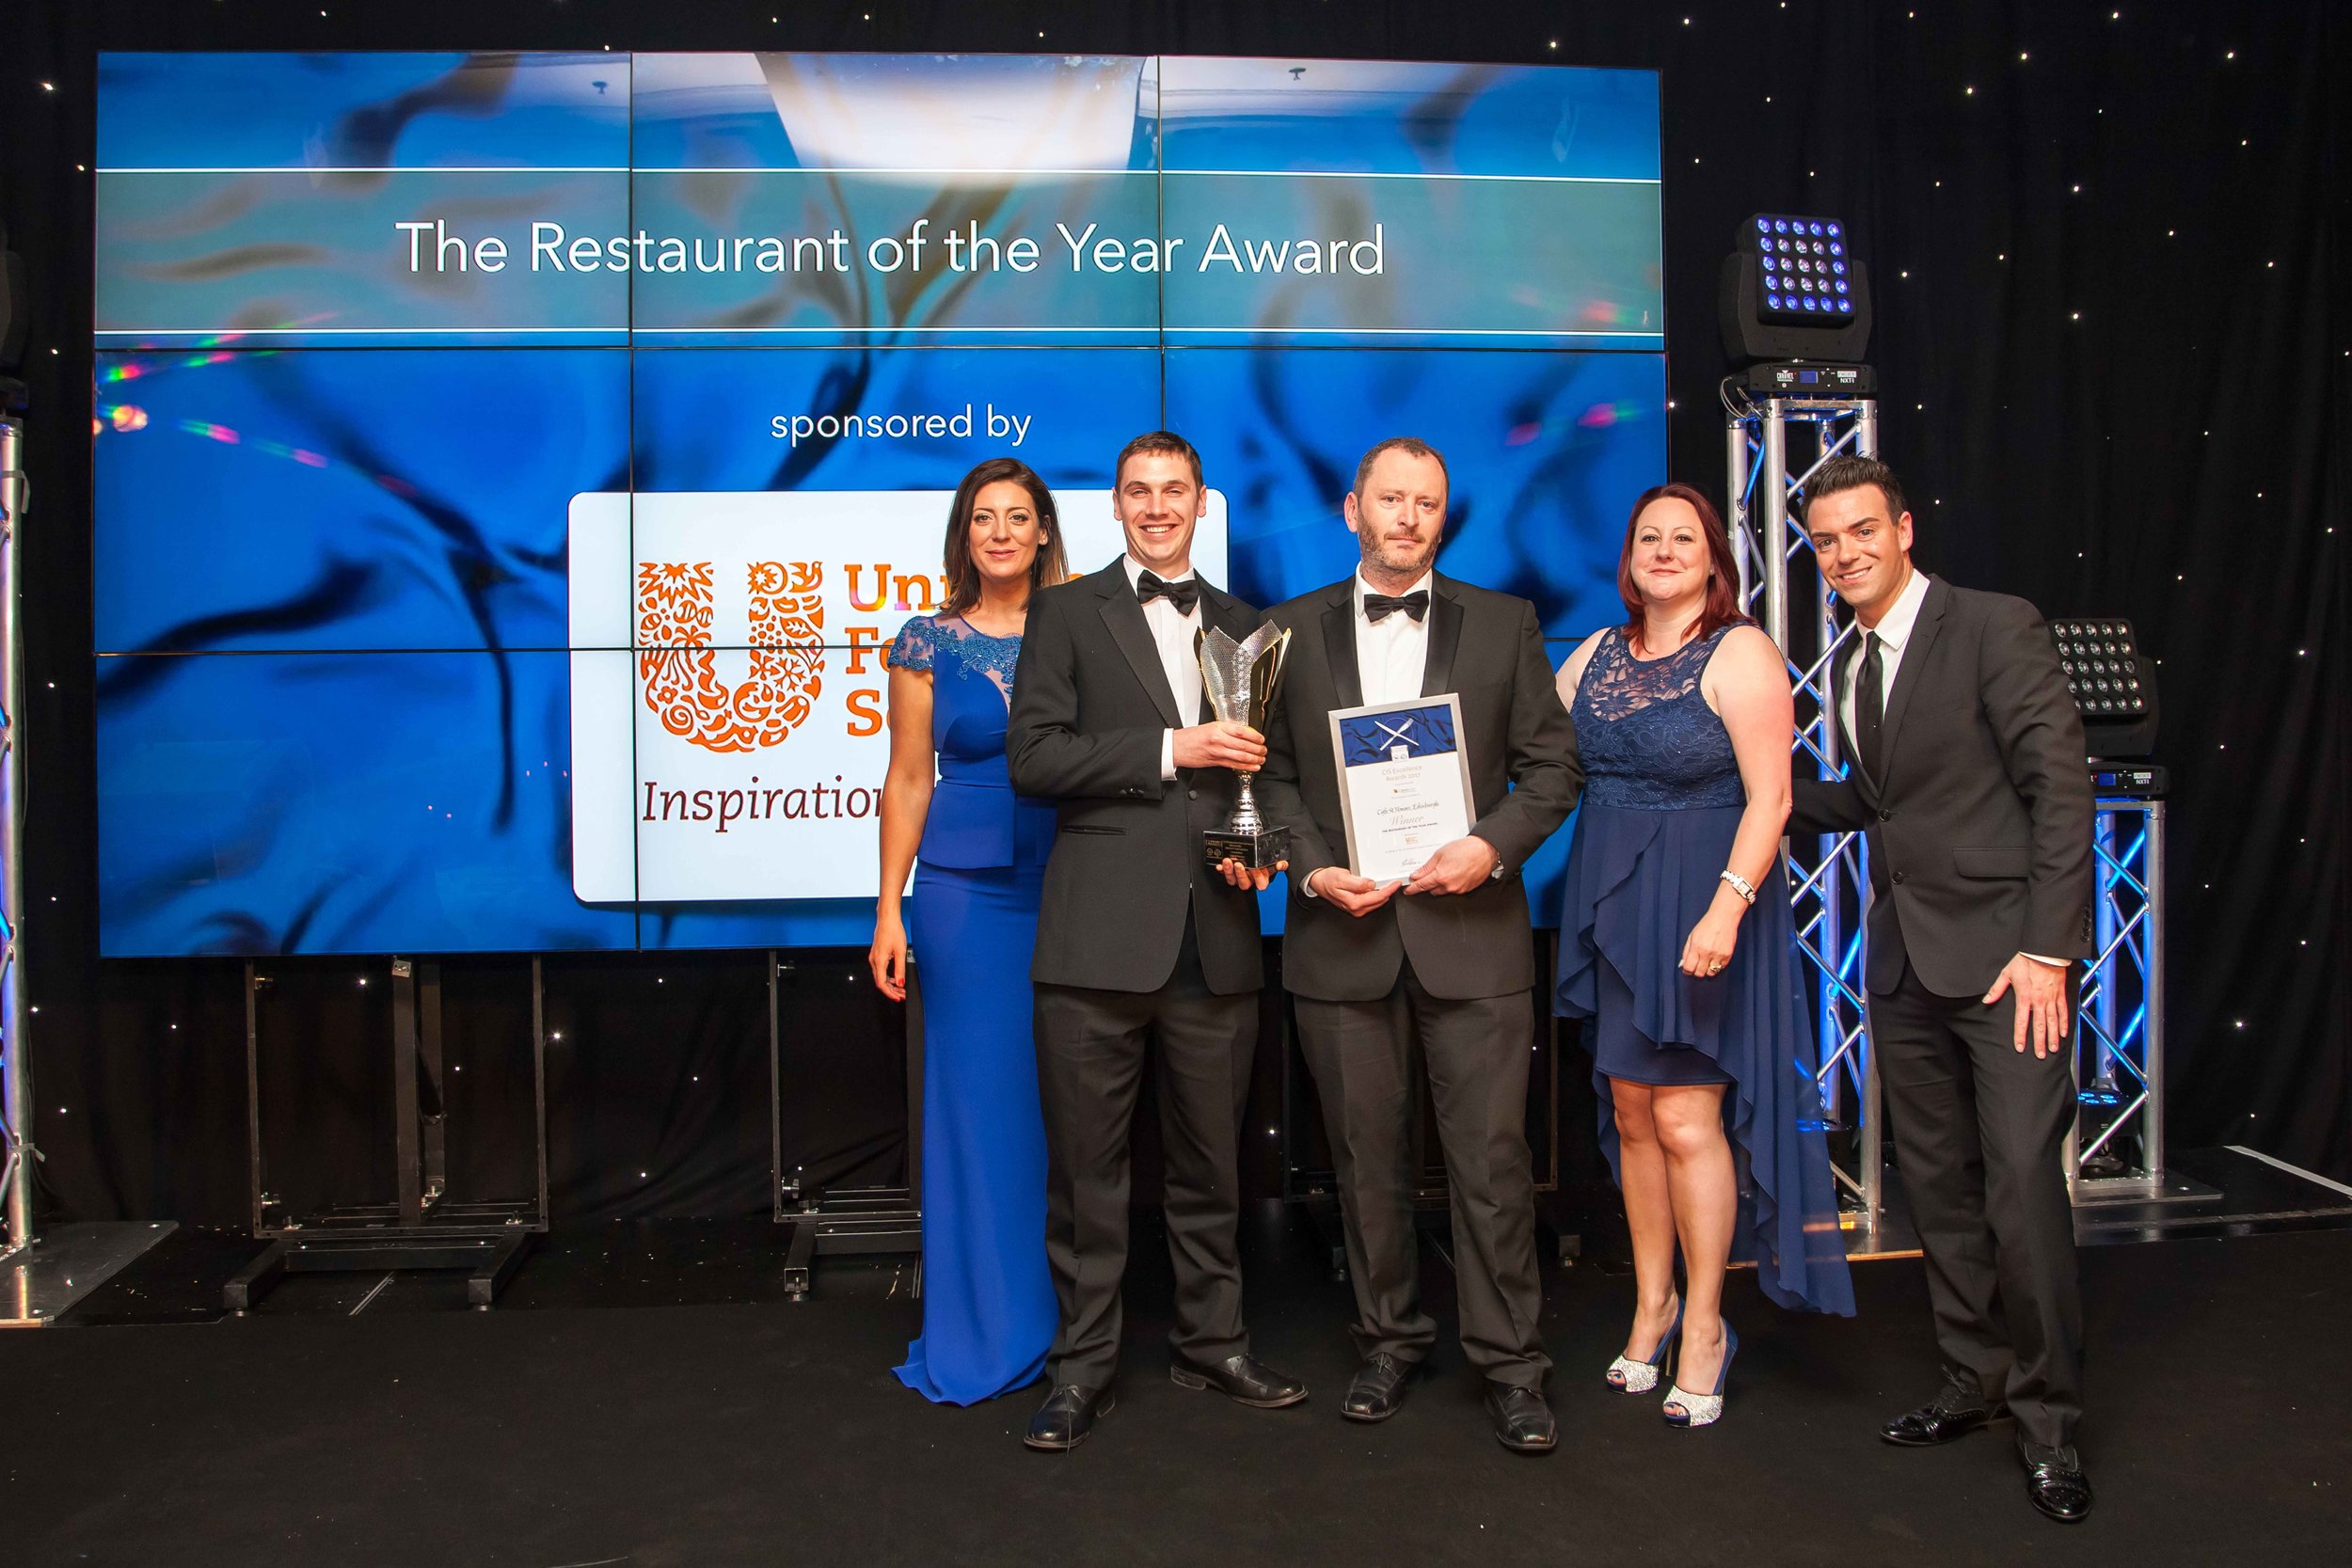 Head Chef Joe Simpson and Chef Director Neil Forbes collecting the award